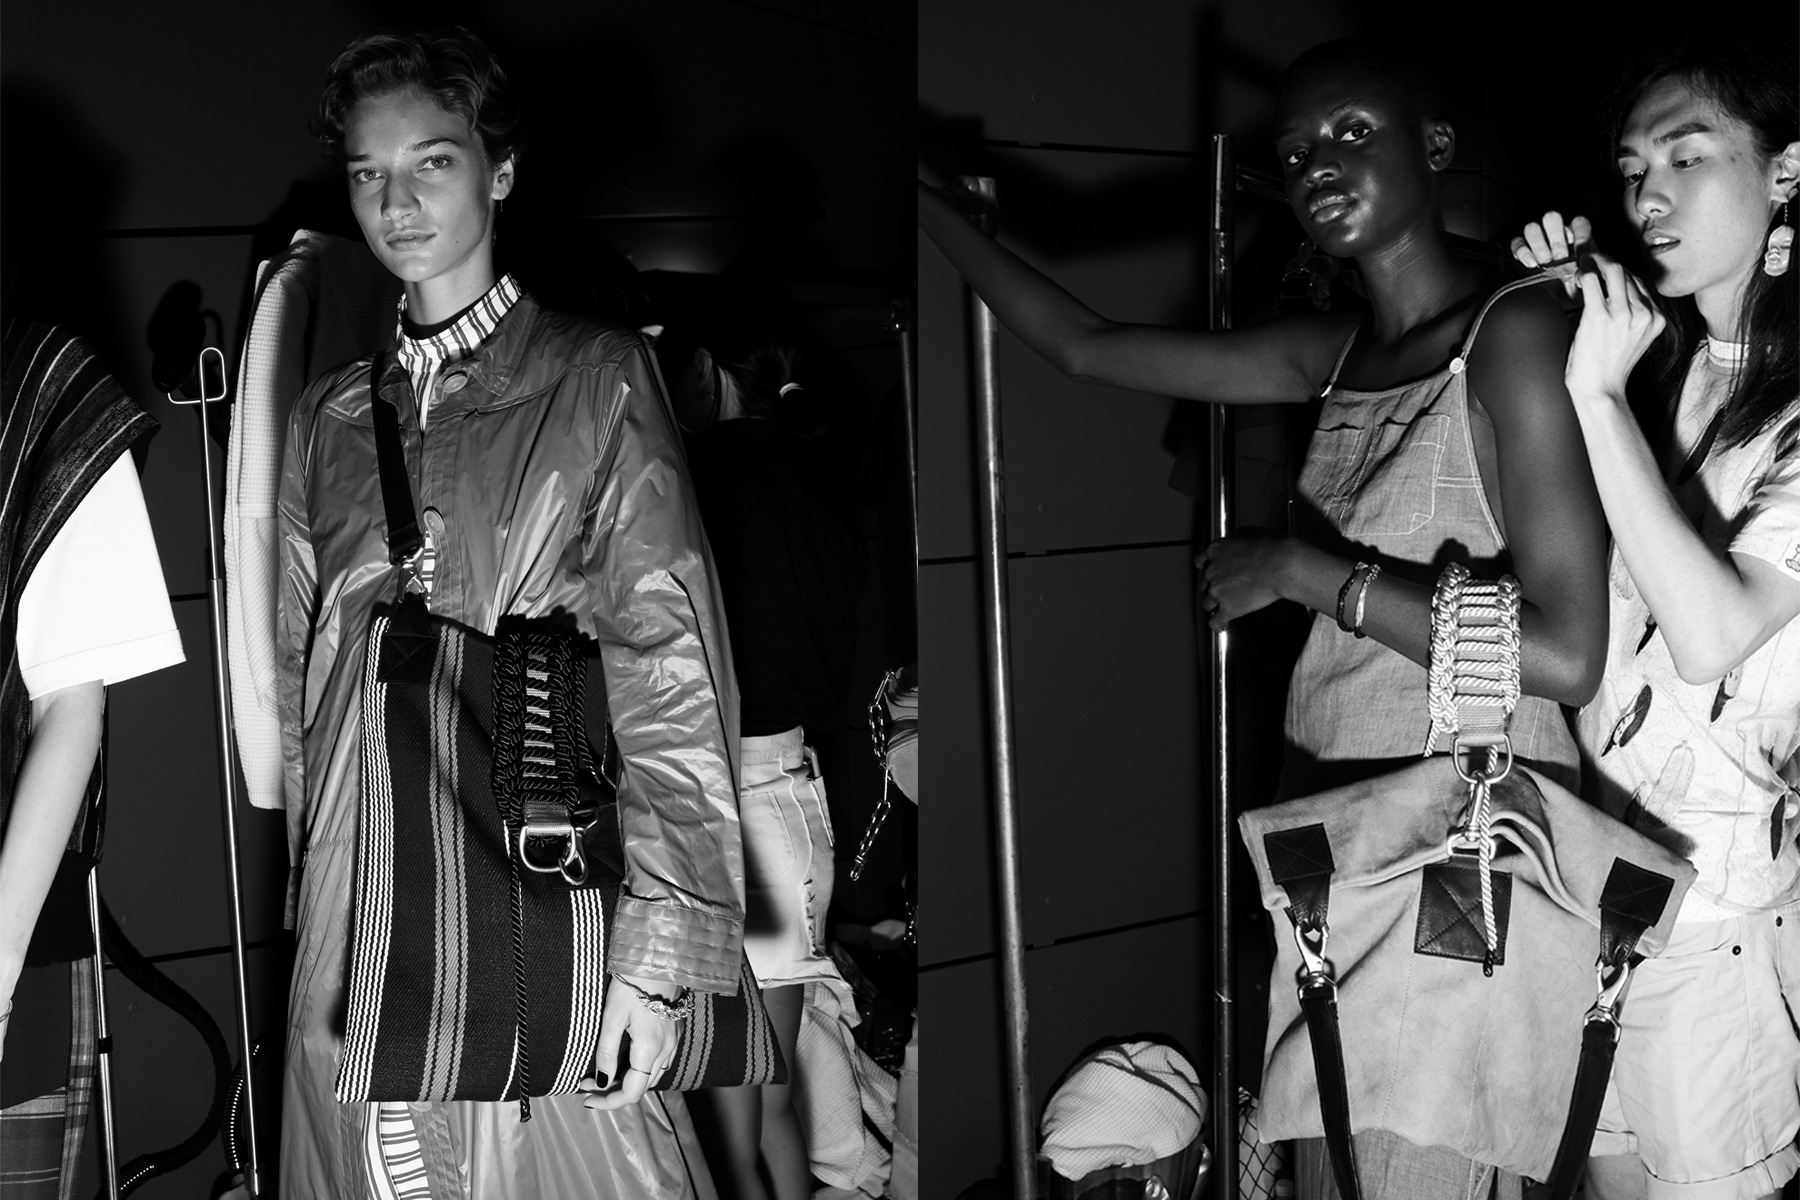 Backstage dressing for womenswear collection from Linder Spring/Summer 2019 show, photographed by Alexander Thompson for Ponyboy magazine.